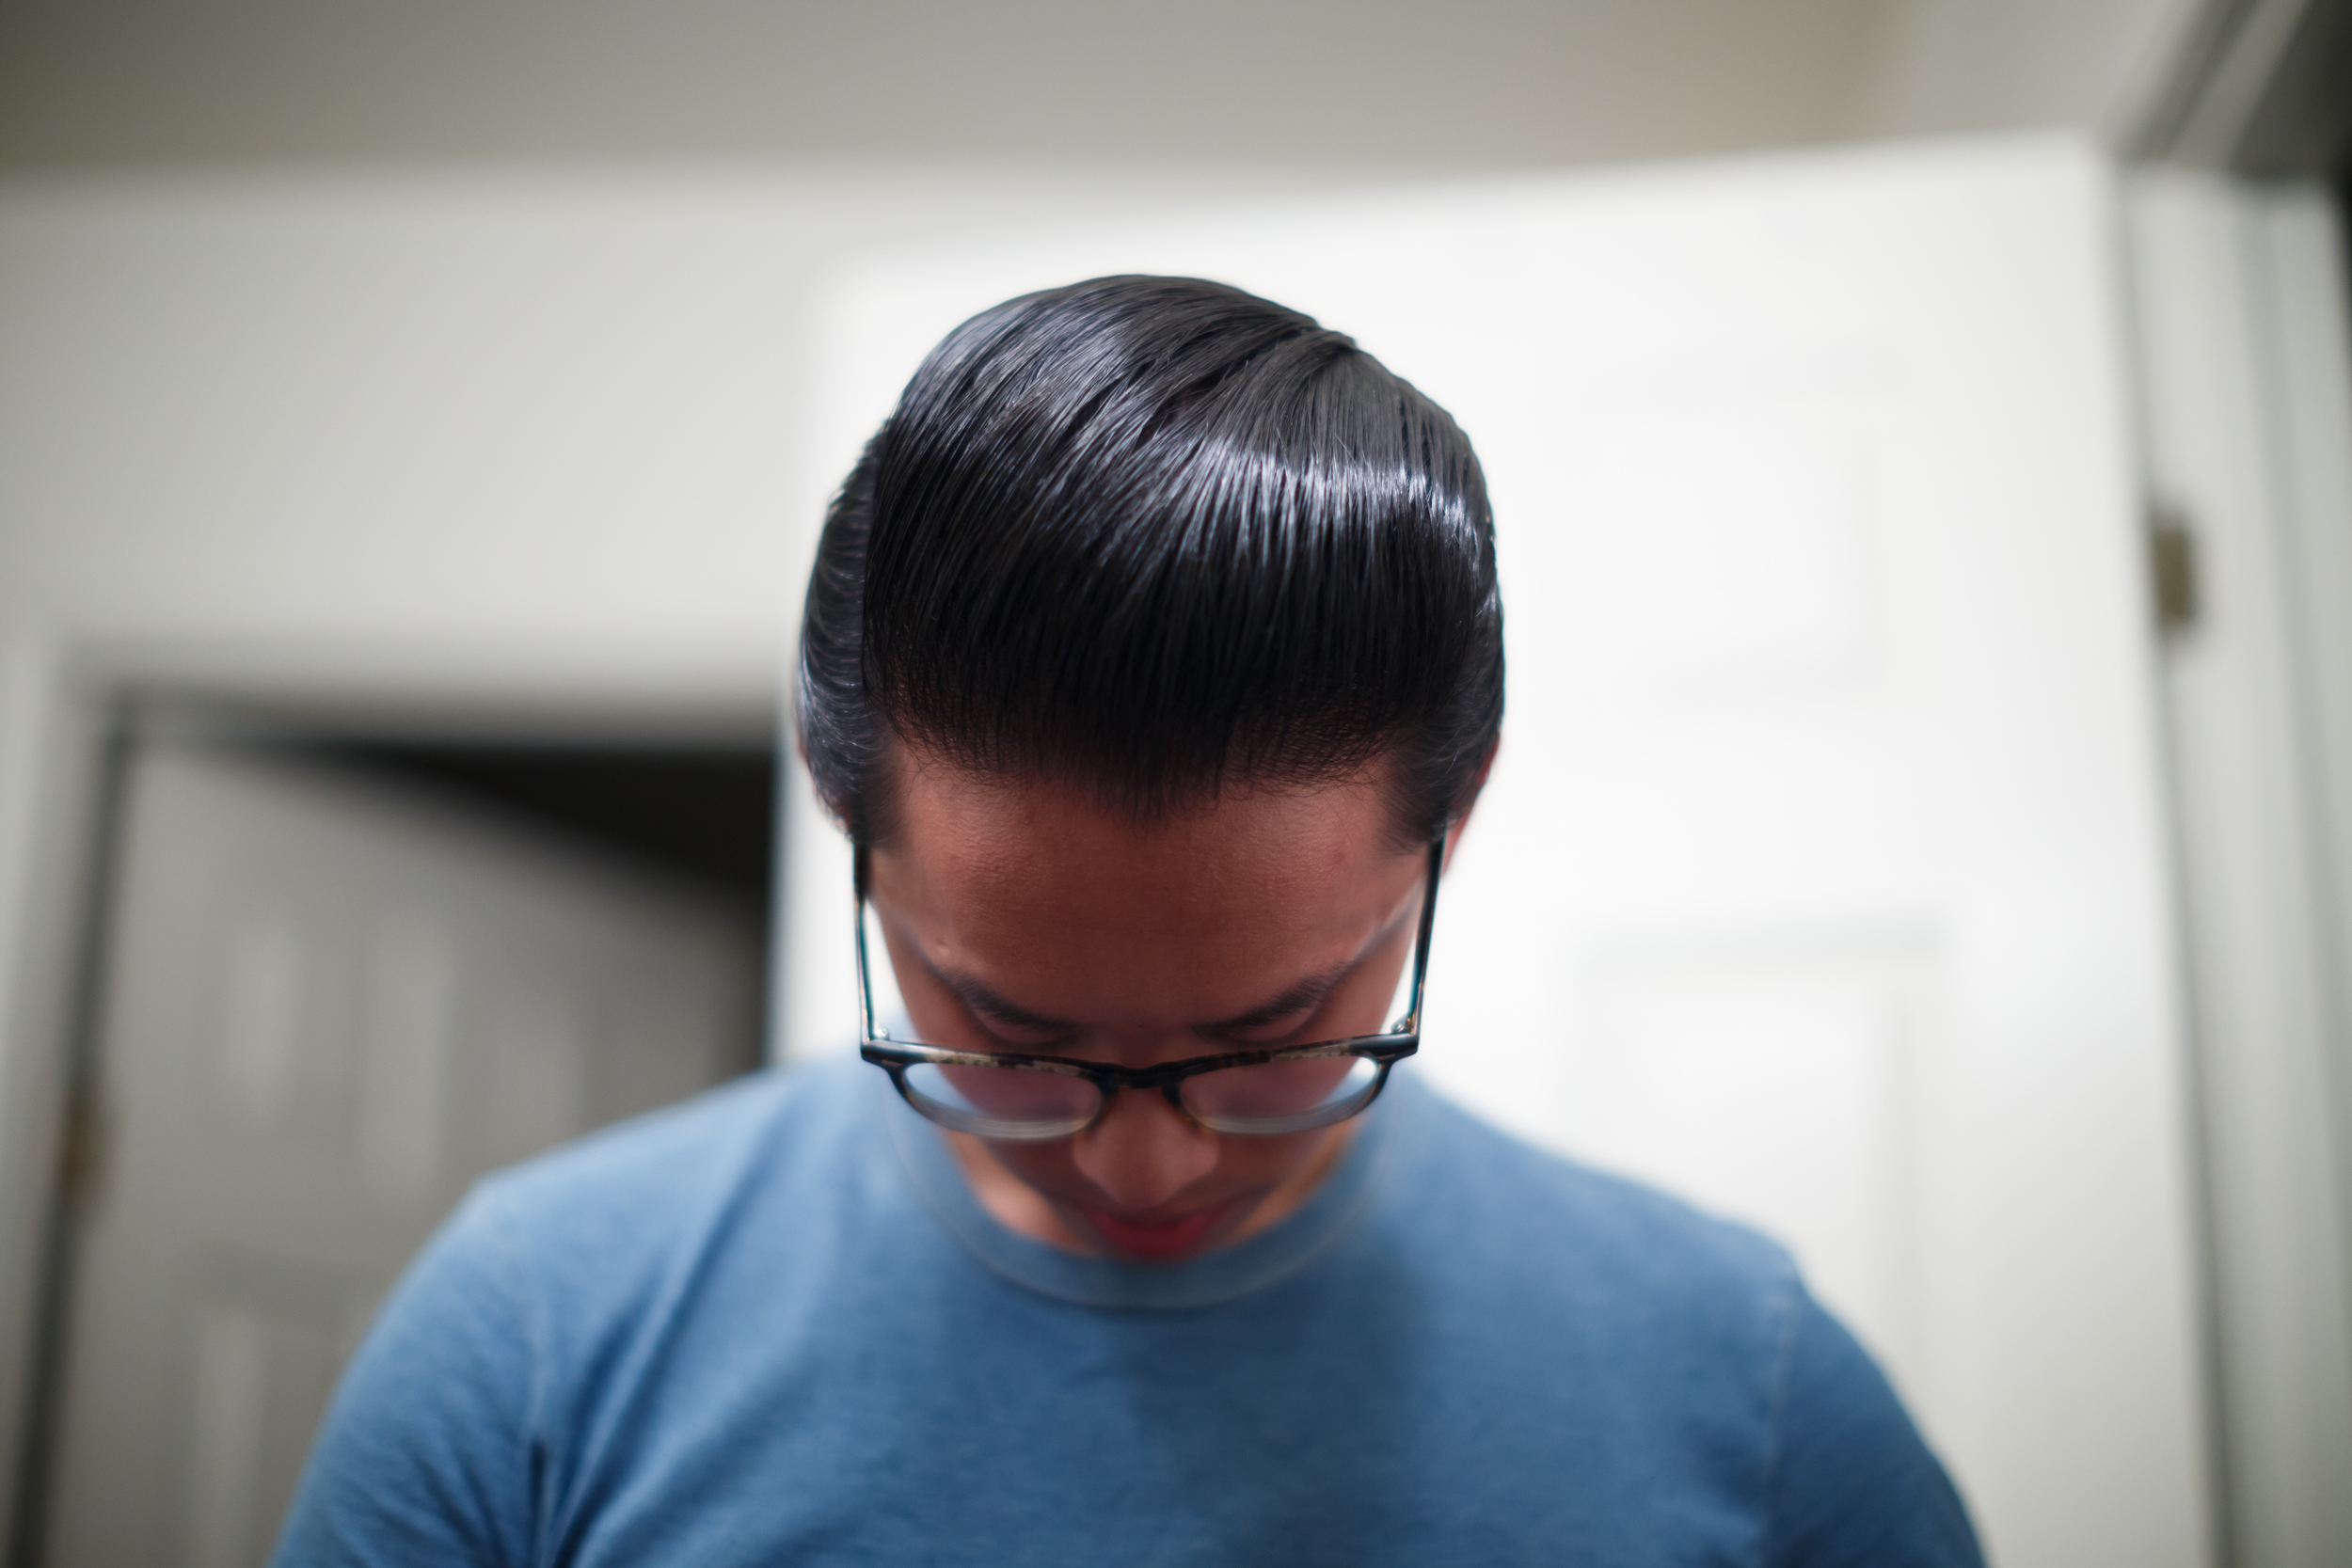 Charming Pomade Cool Grease CoolGrease Hedgelion Japan Japanese Hair Hairstyle Pomp Pompadour r3efs